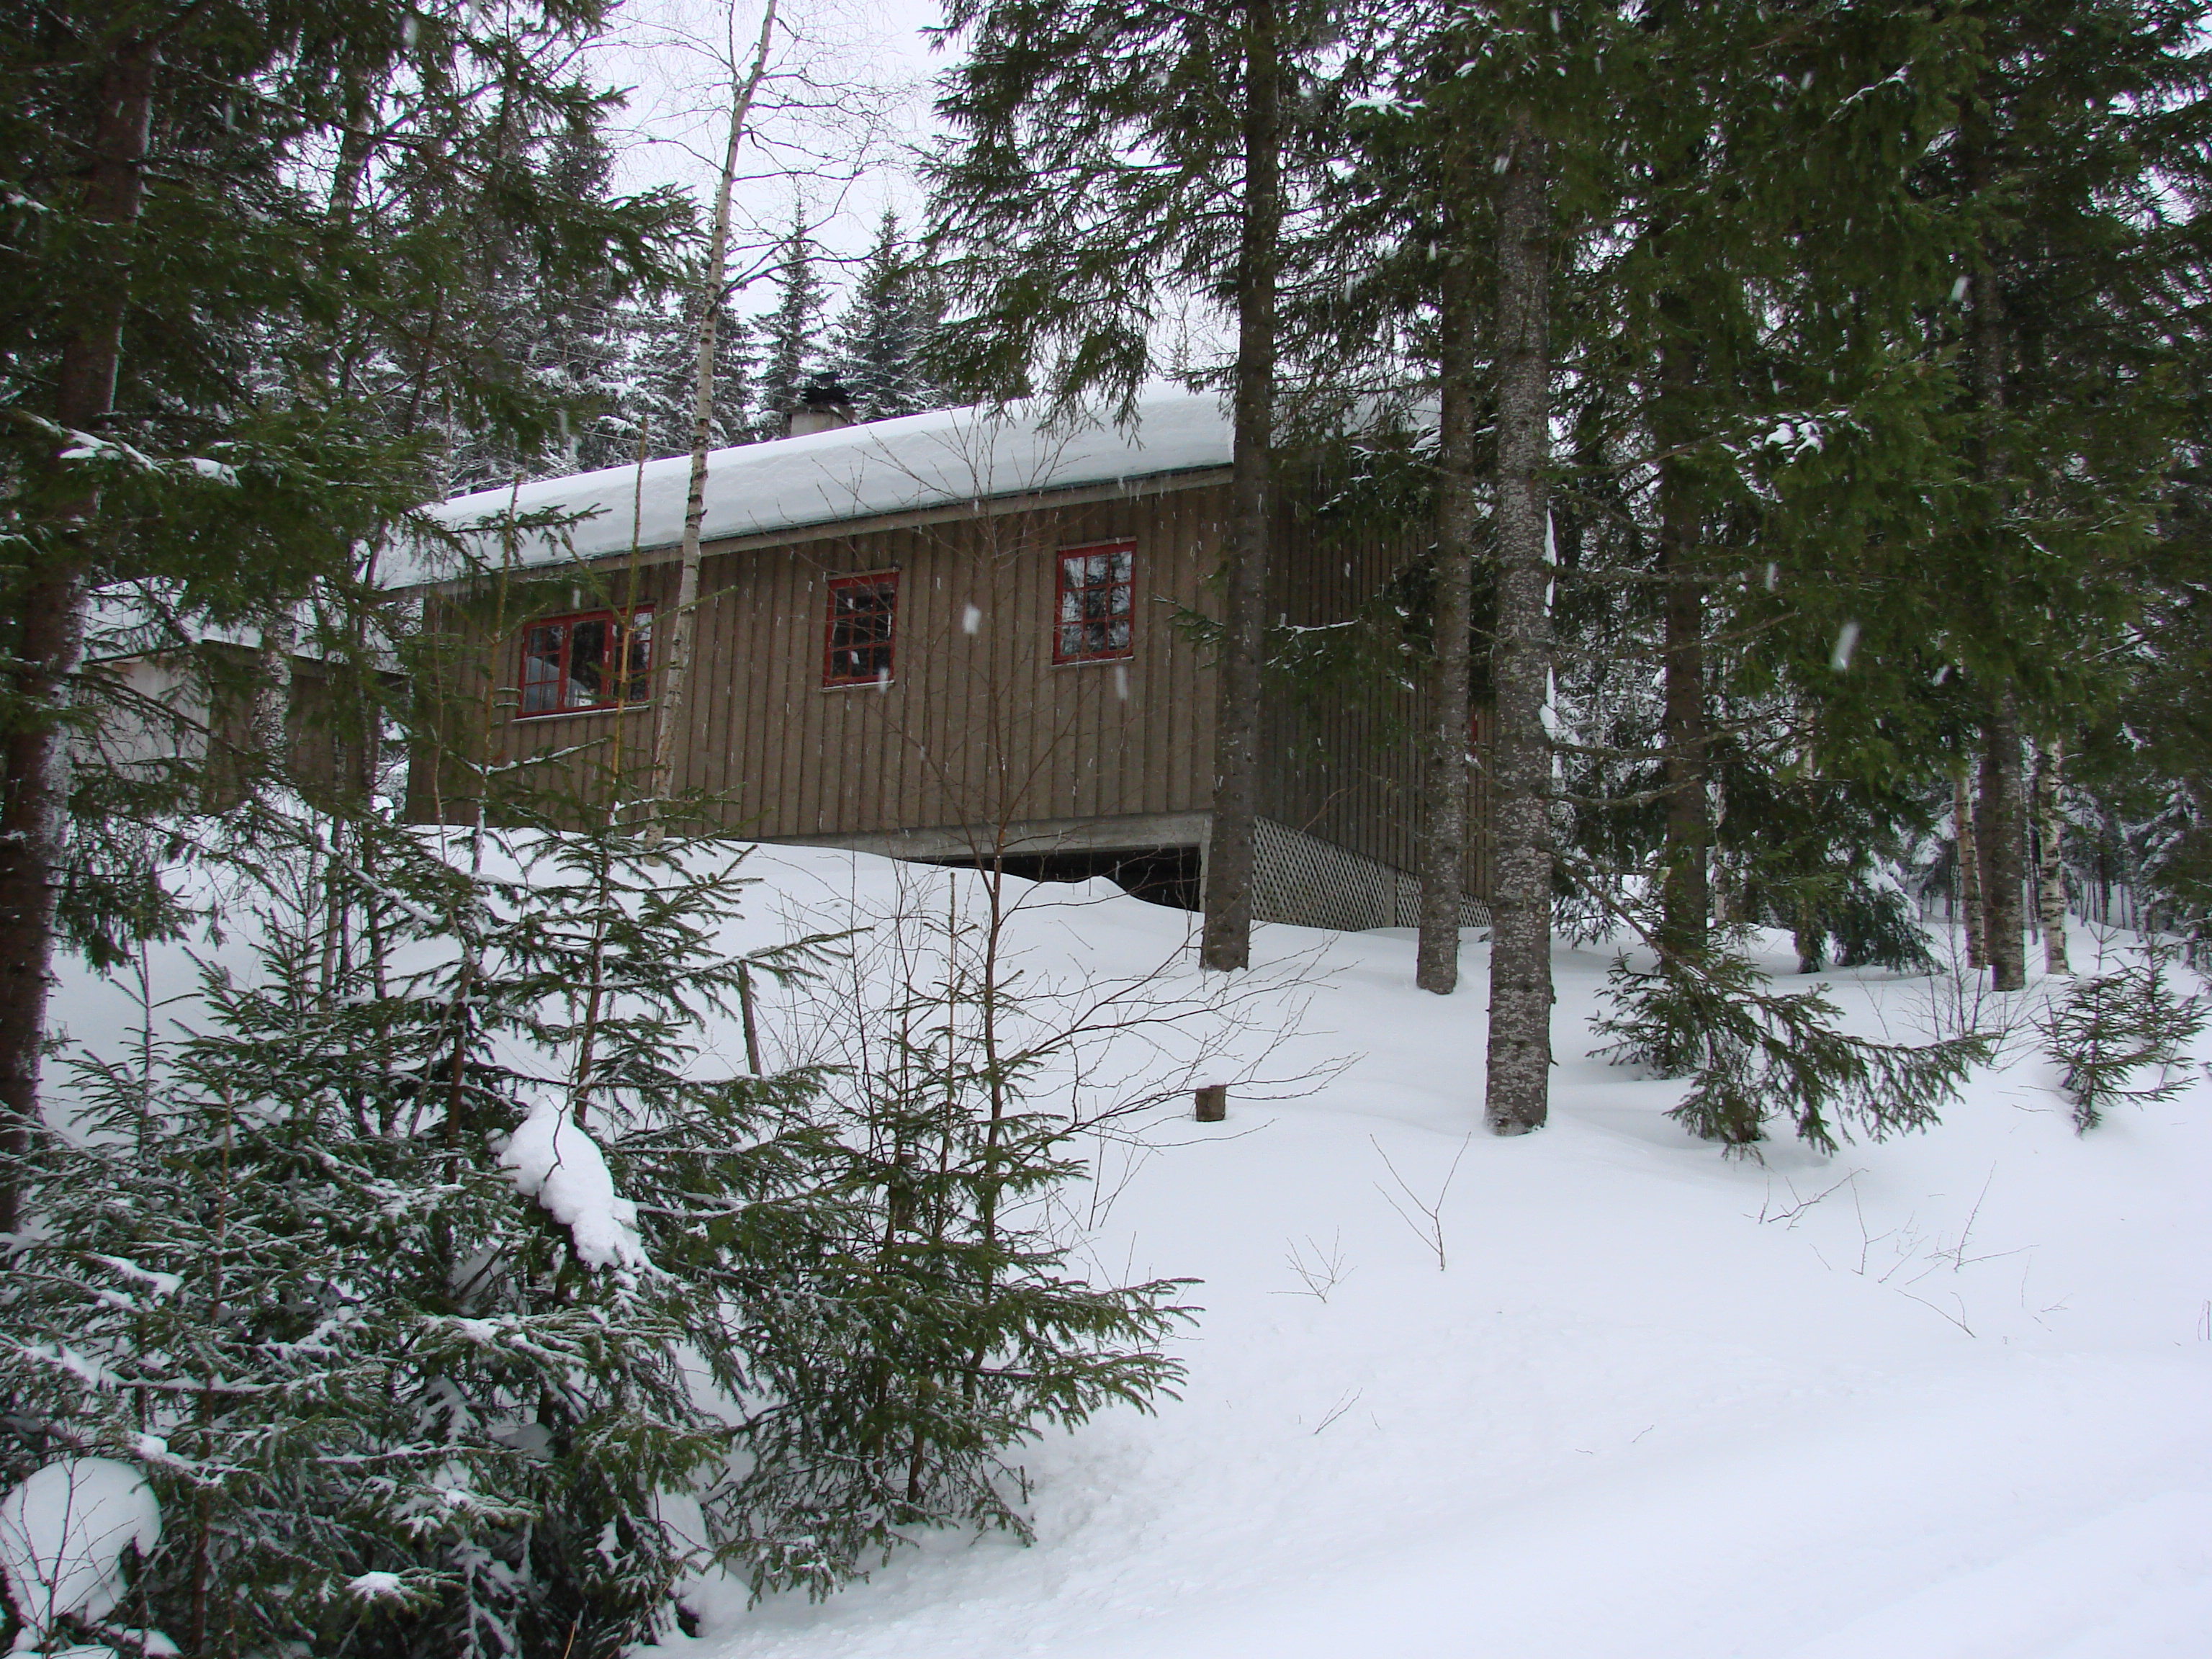 My cabin in the mountains